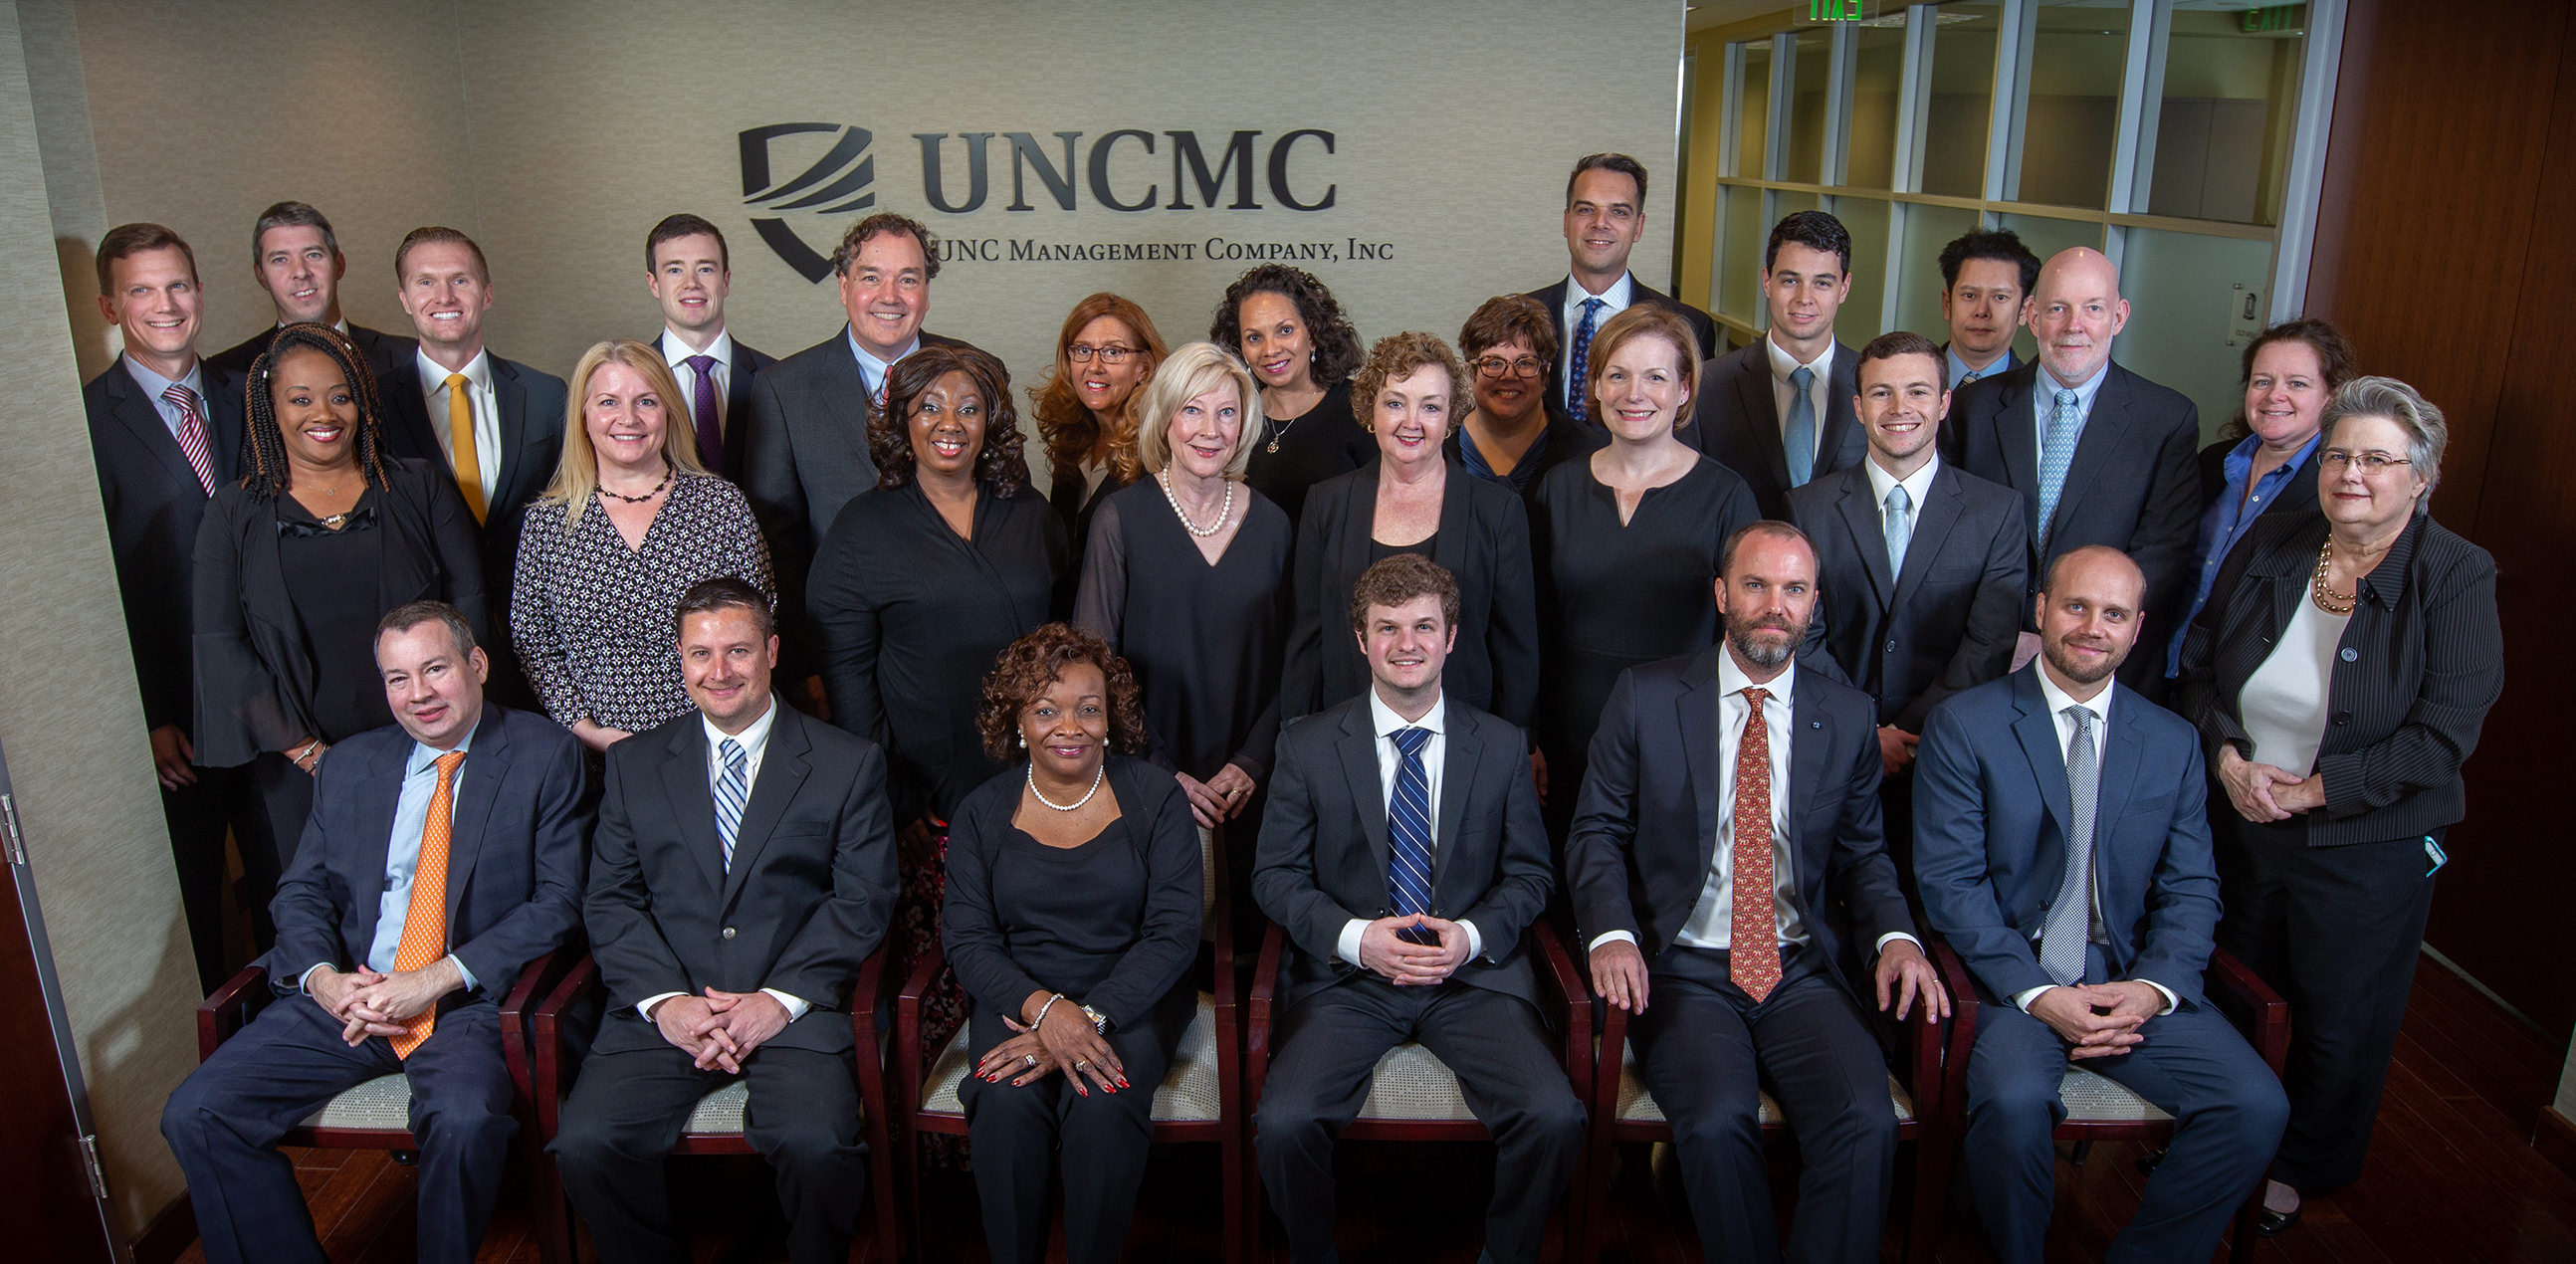 UNCMC staff posing as a group in office lobby